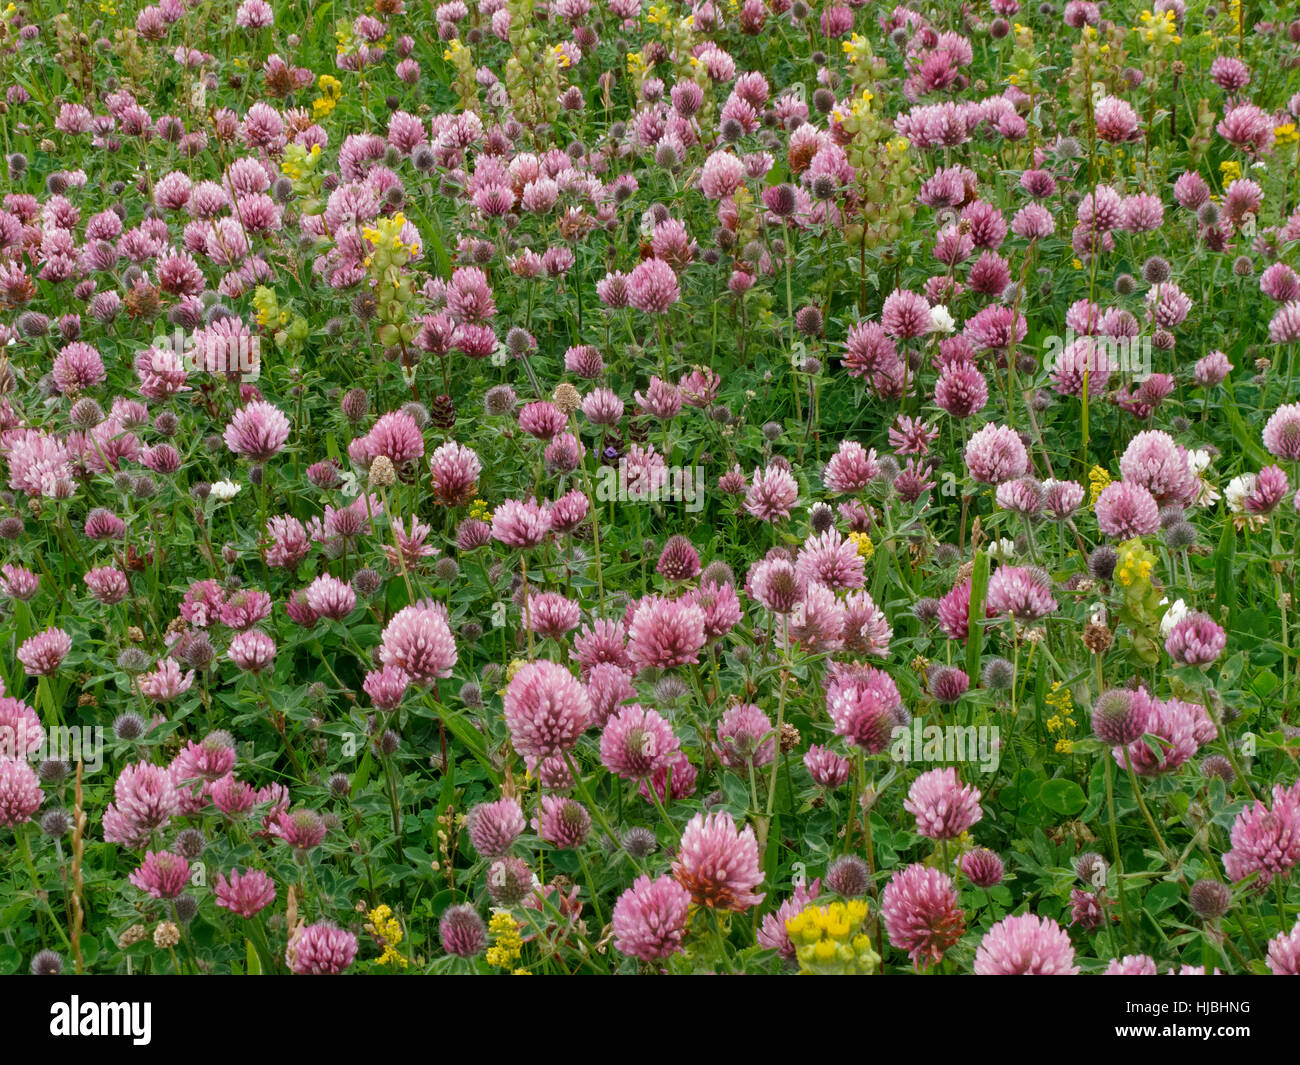 Machair habitat on the isle of Vatersay, in the Outer Hebrides, showing red clover (Trifolium pratense) and yellow - Stock Image